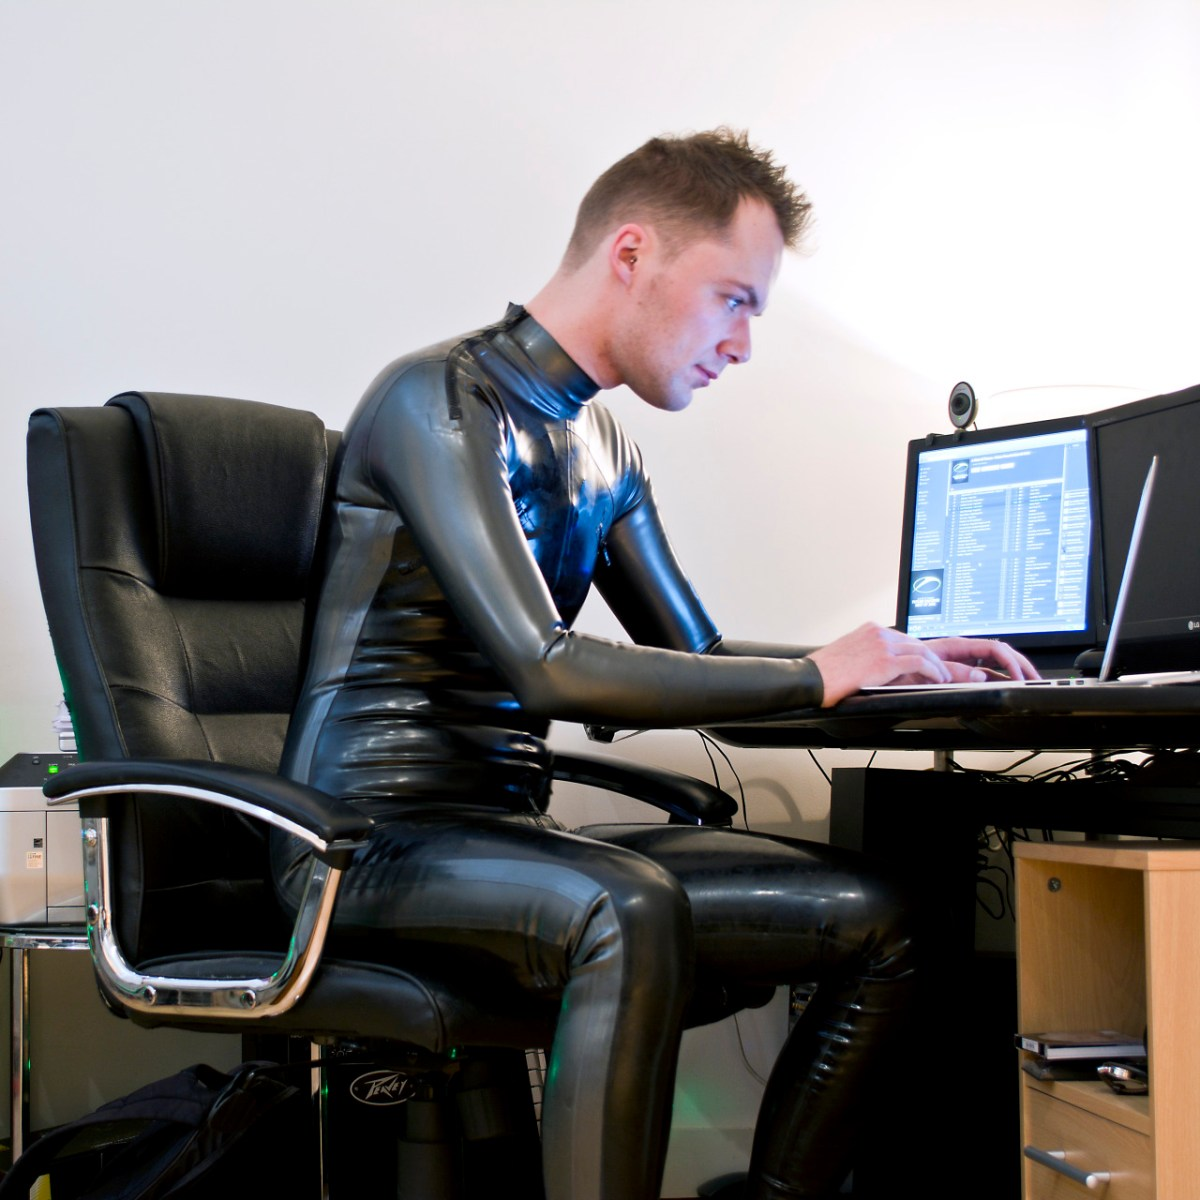 Working From Home in Rubber Suit